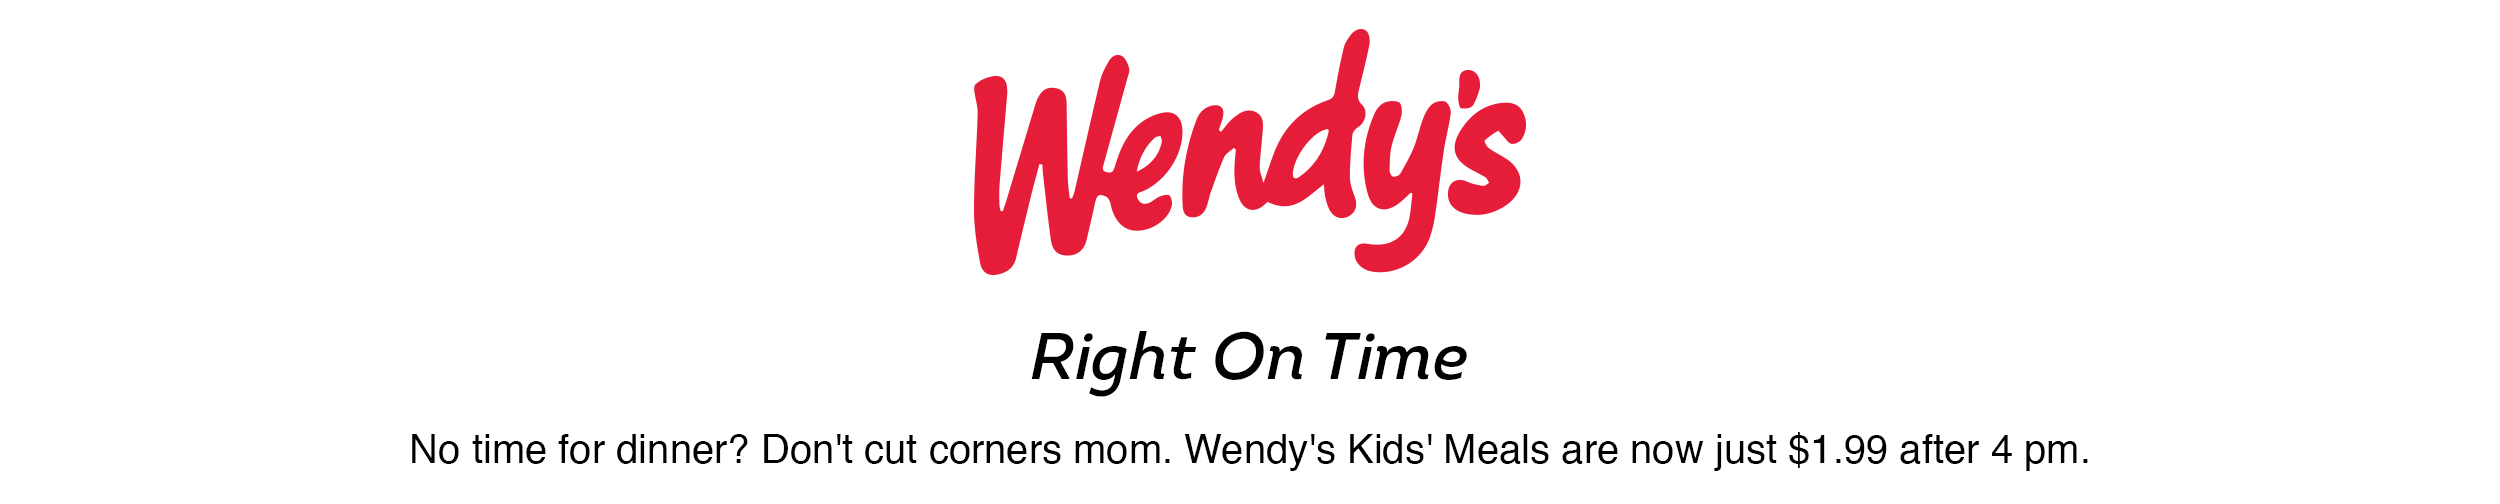 wendy's - time